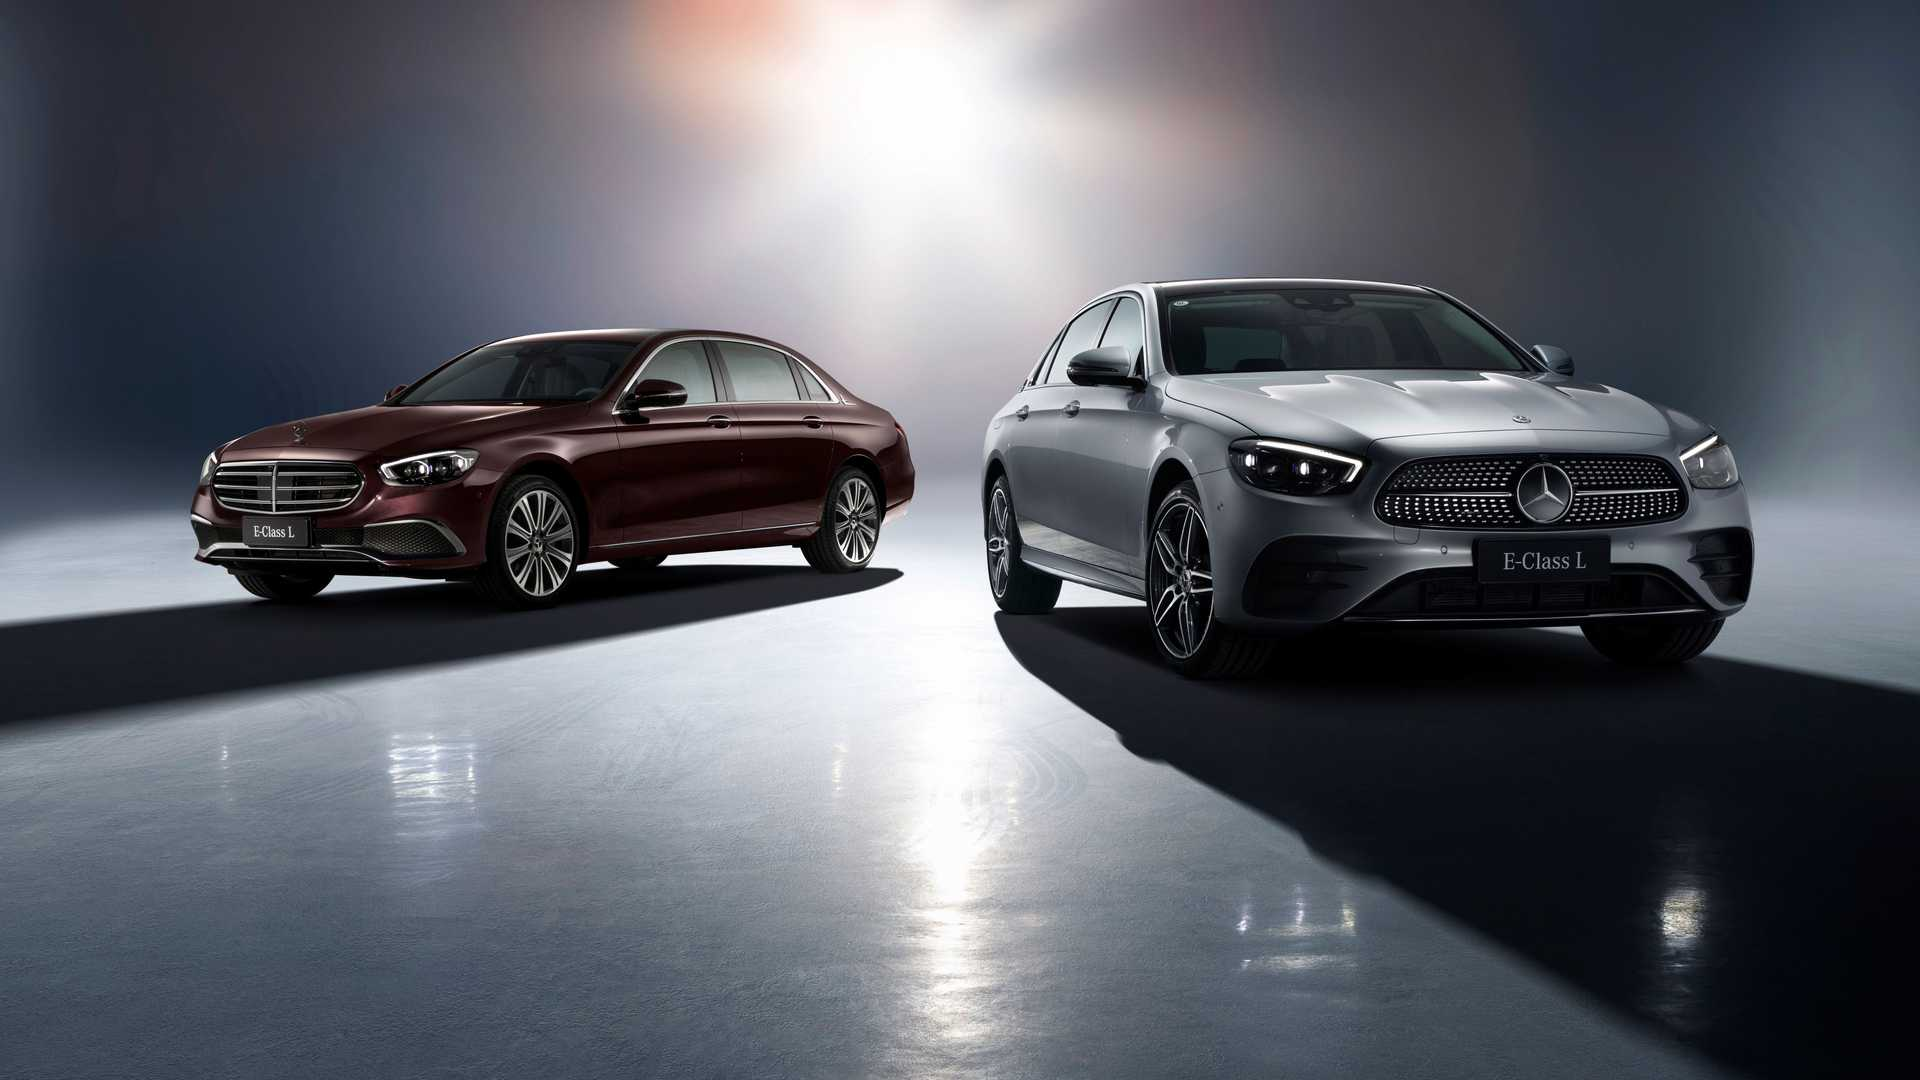 The China-only Mercedes-Benz E-Class heads into 2021 with an even longer wheelbase than before and new modern niceties in the cabin.